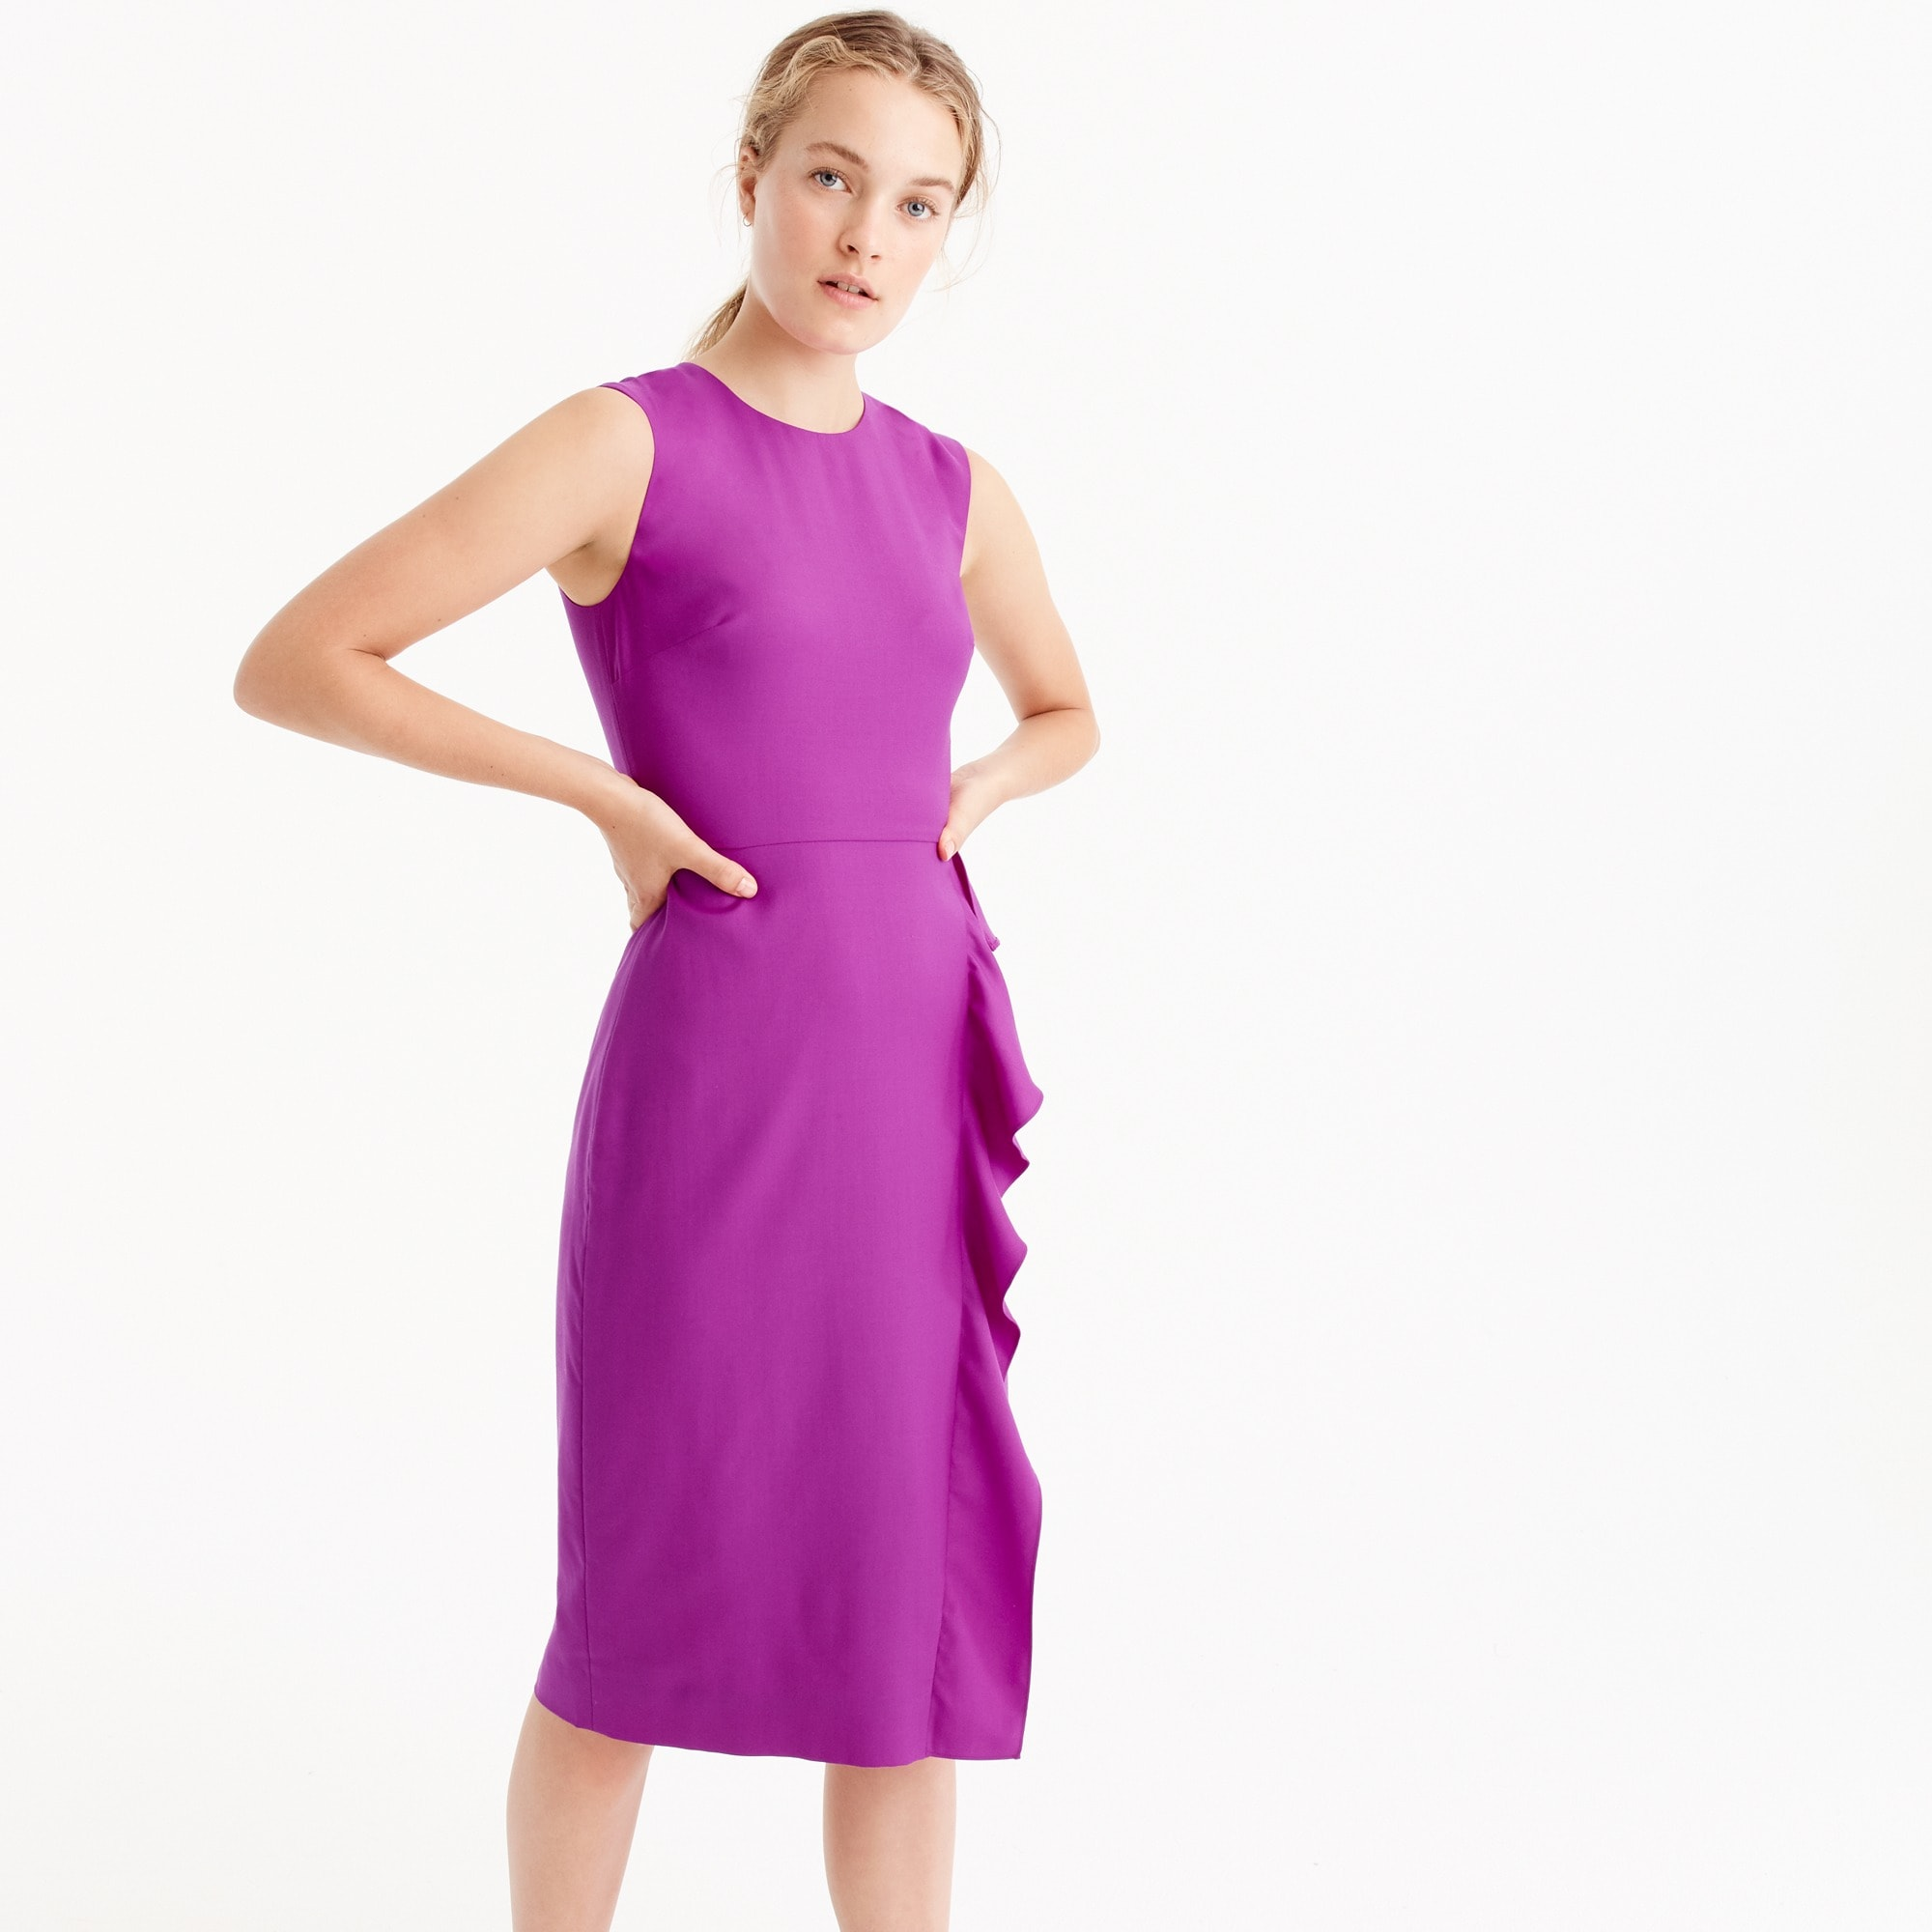 Ruffled sheath dress in Super 120s wool